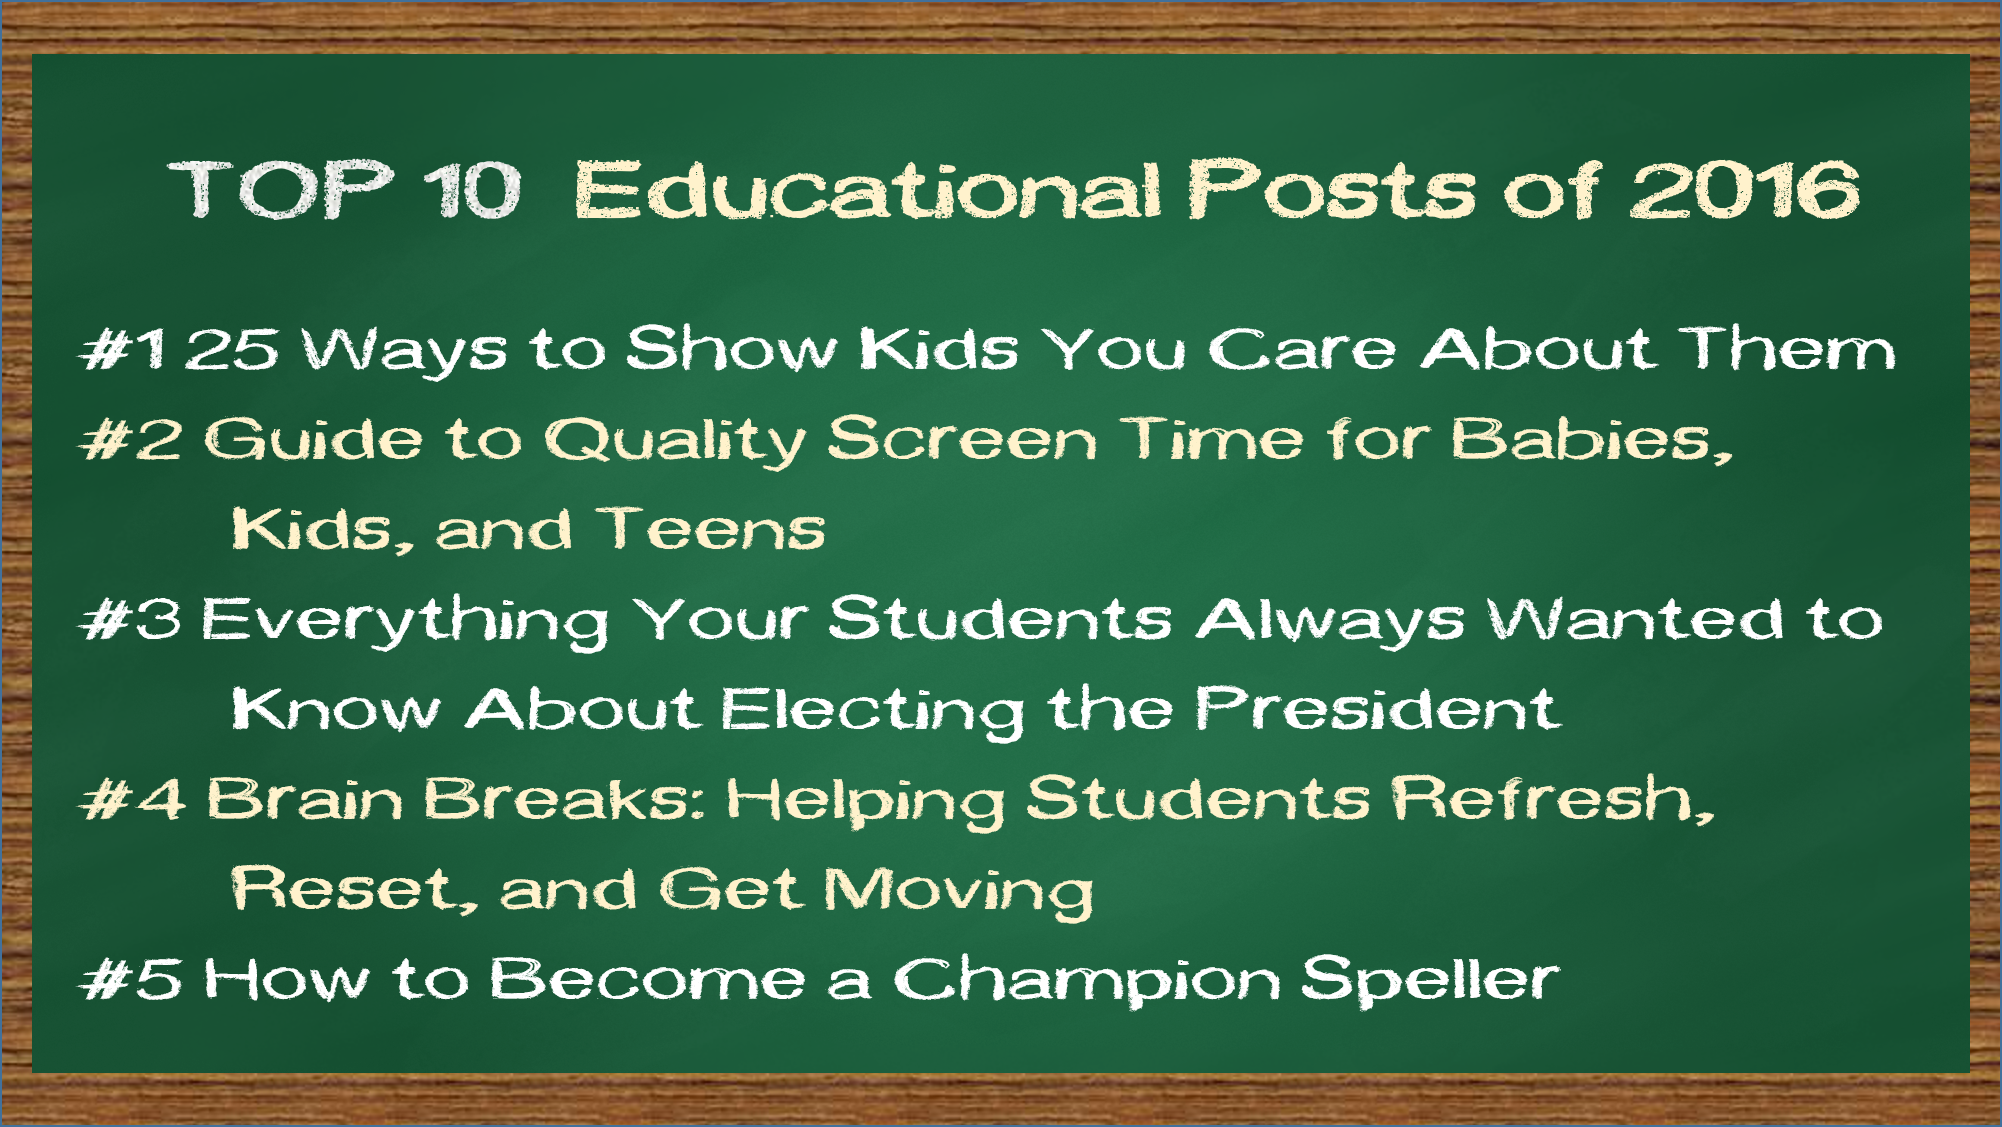 top-10-educational-posts-of-2016